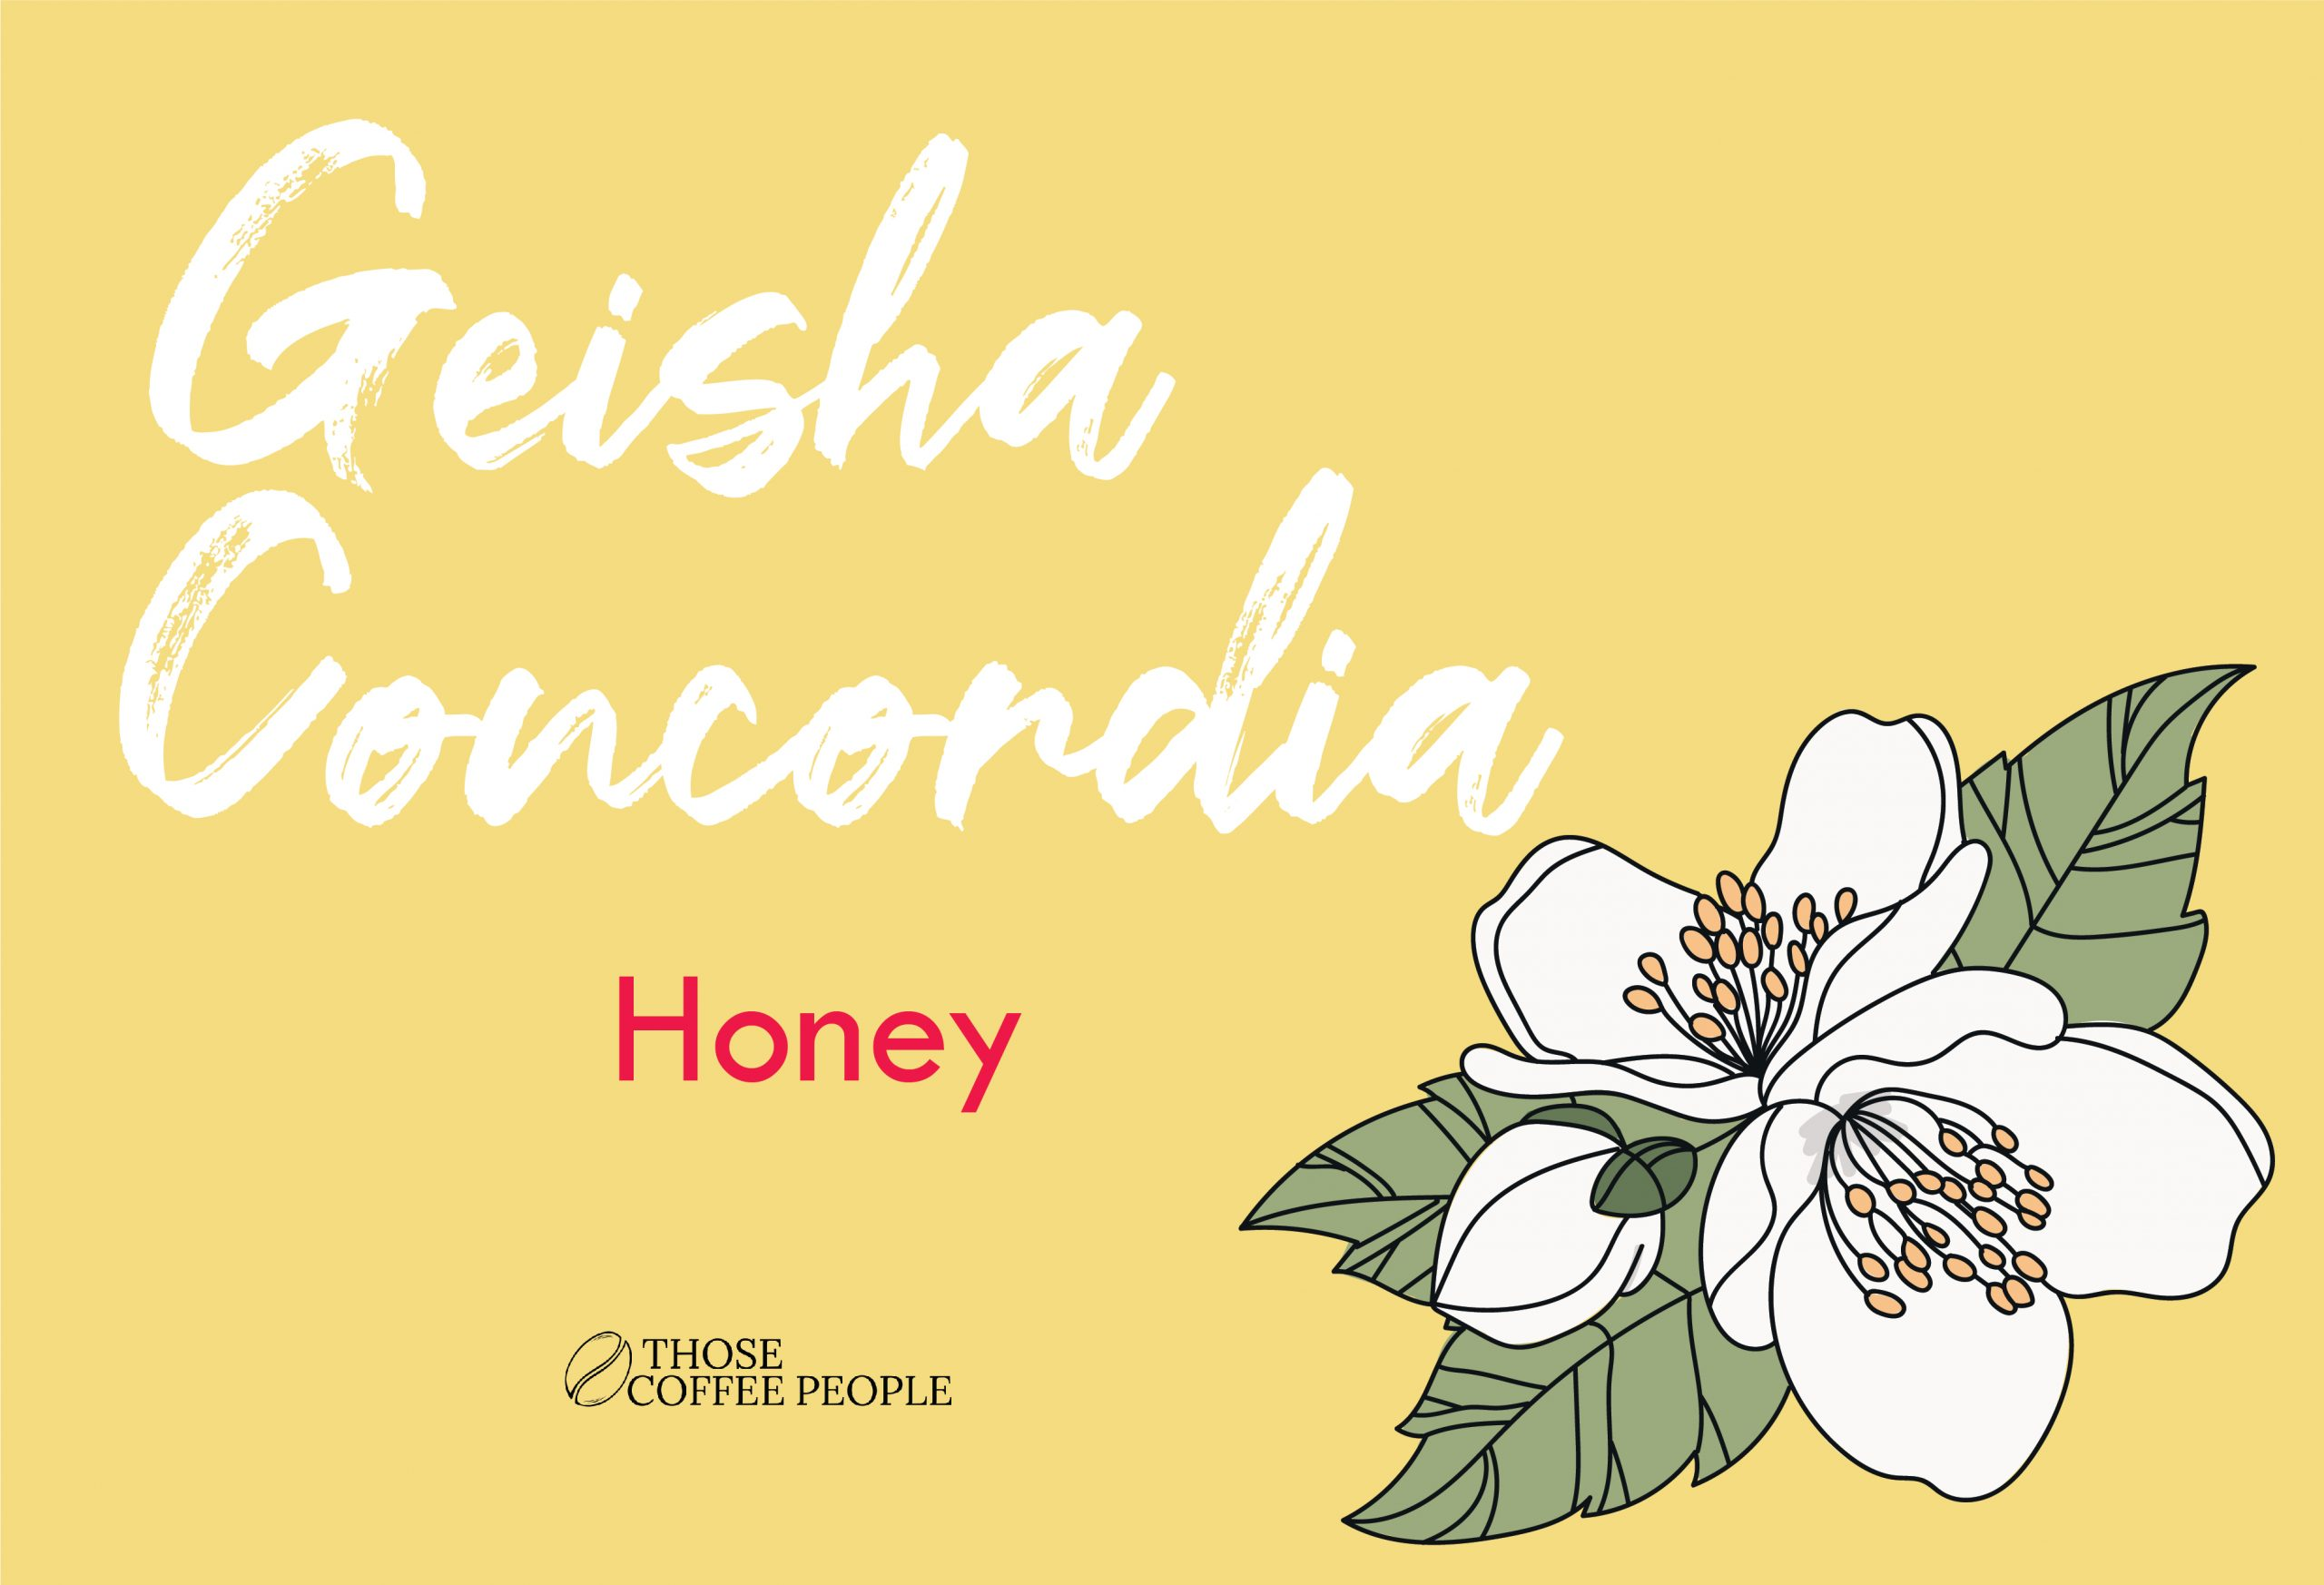 Geisha Honey